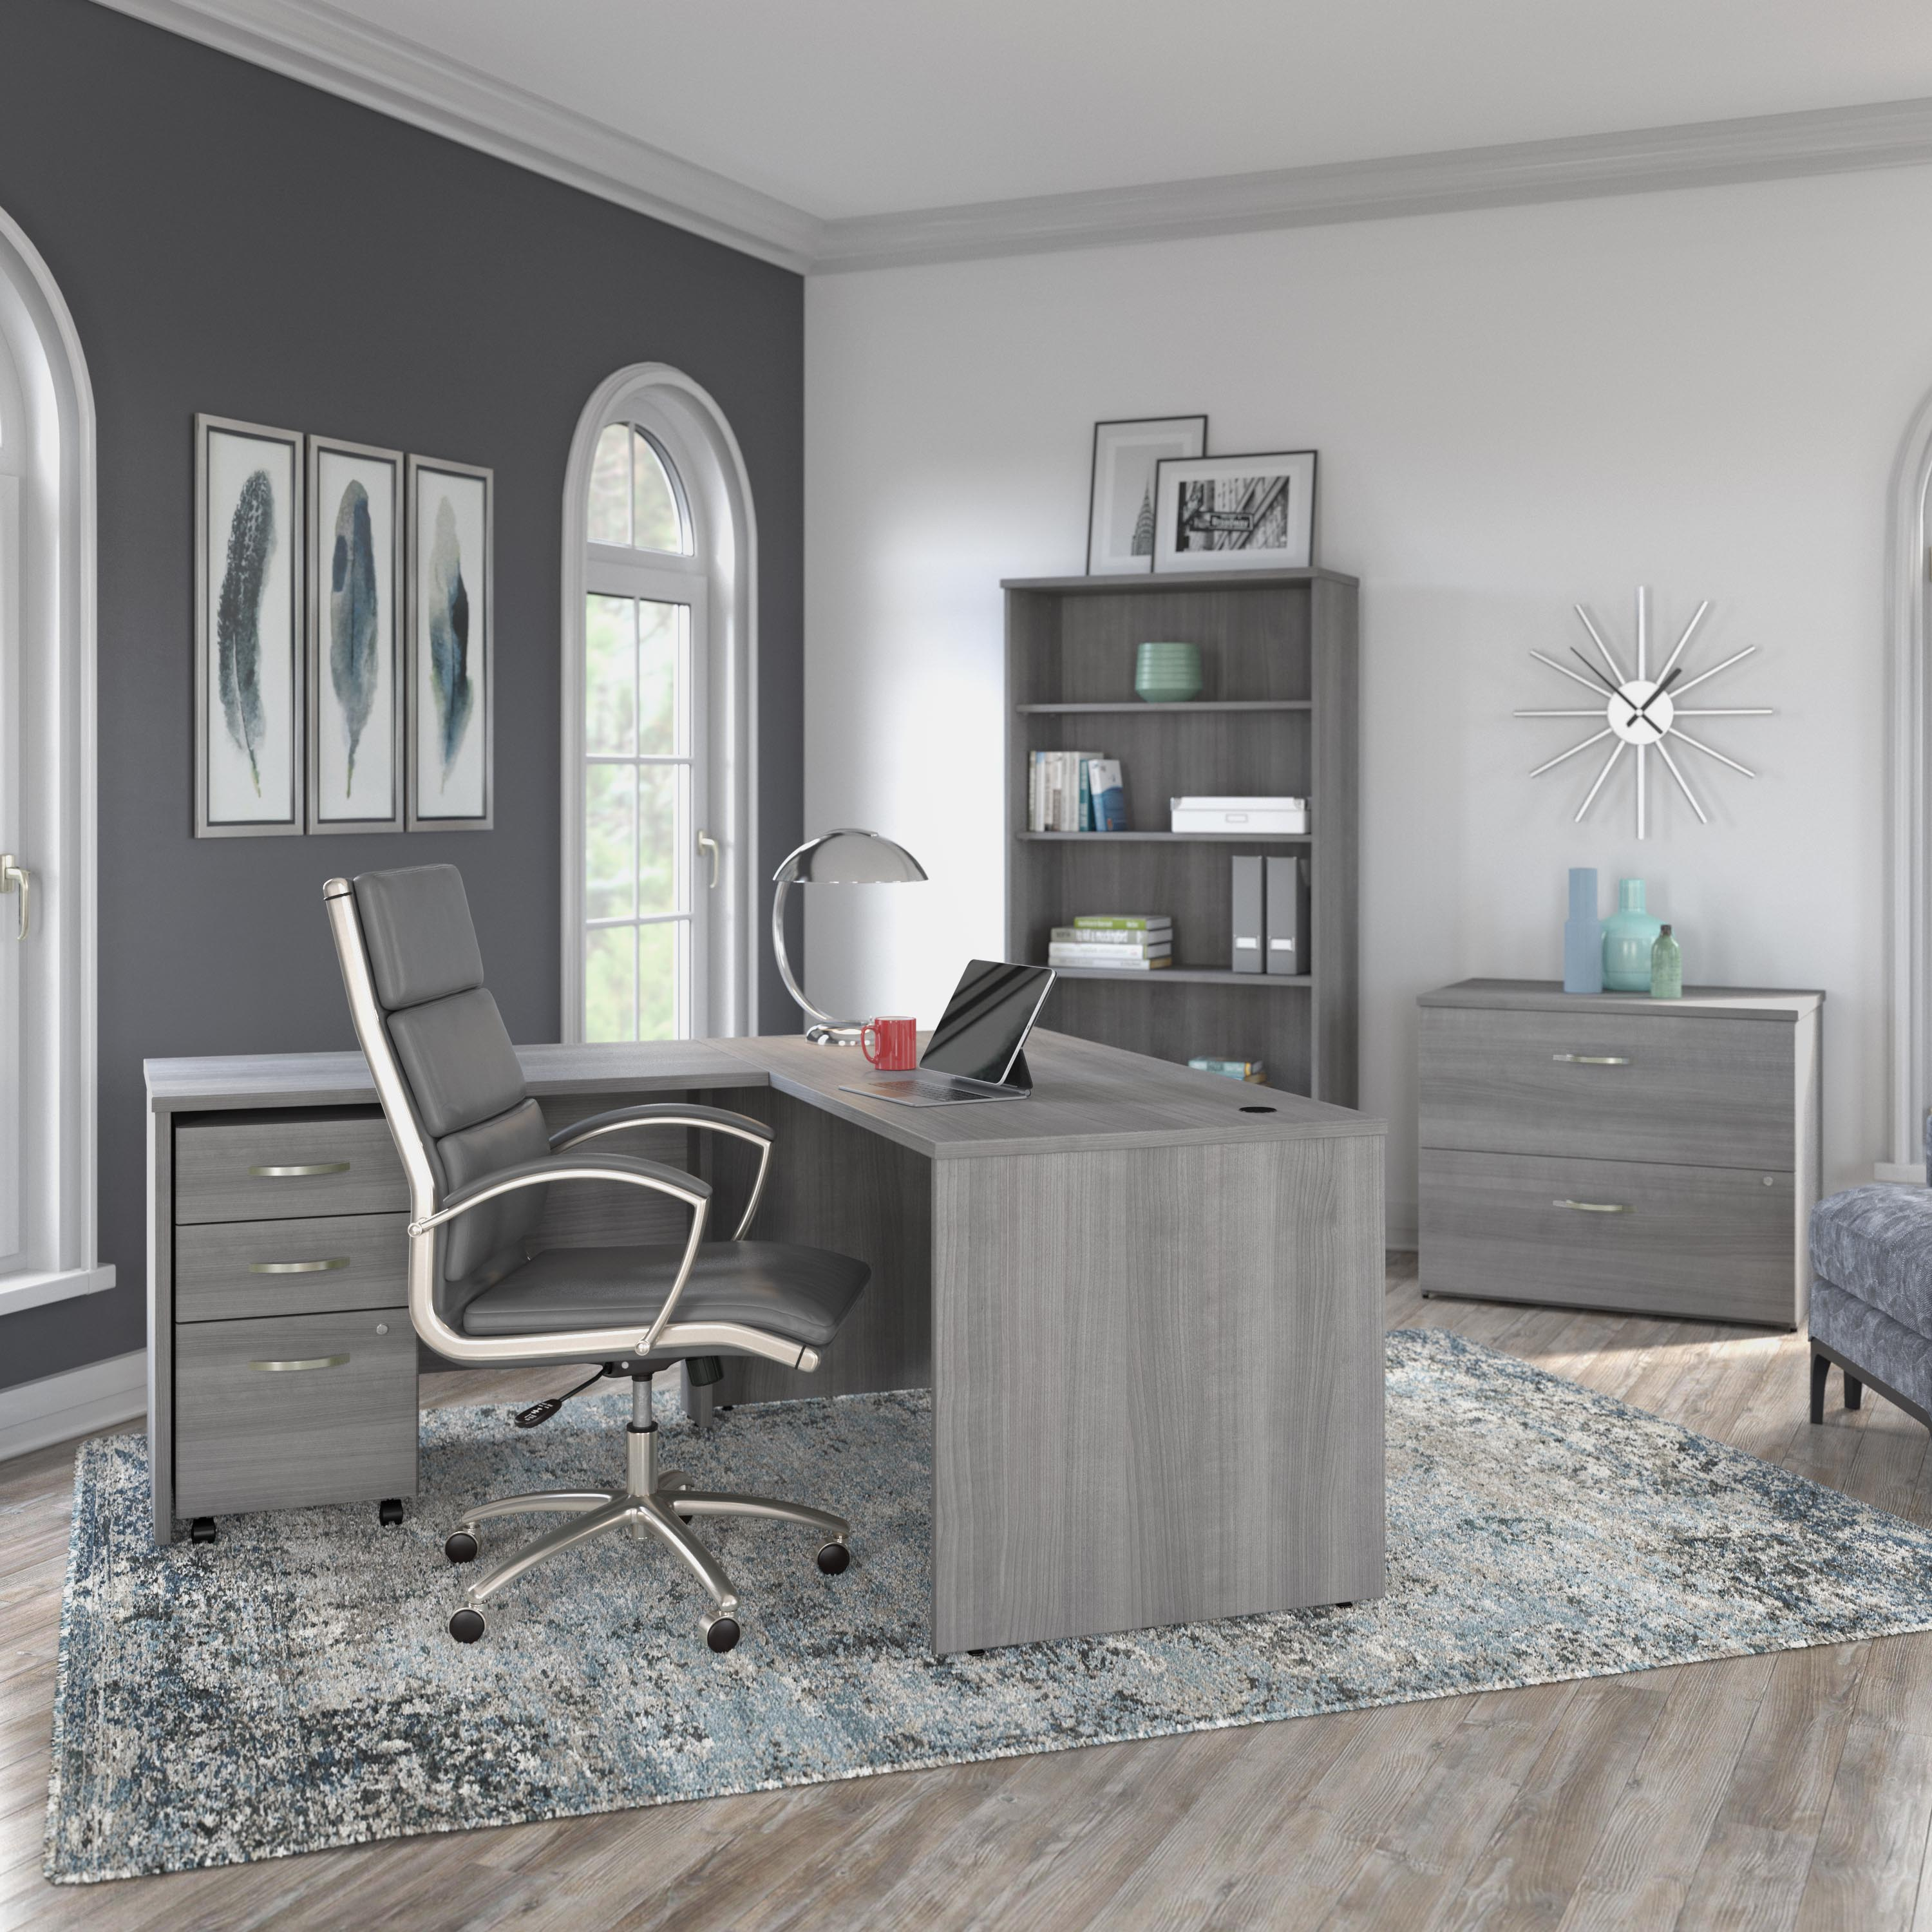 A 3D rendering of the Bush Business Furniture Studio C Collection in a home office environment. An increased demand for work from home furniture has the combined Bestar and Bush Industries company anticipating a need for up to 40 new employees.